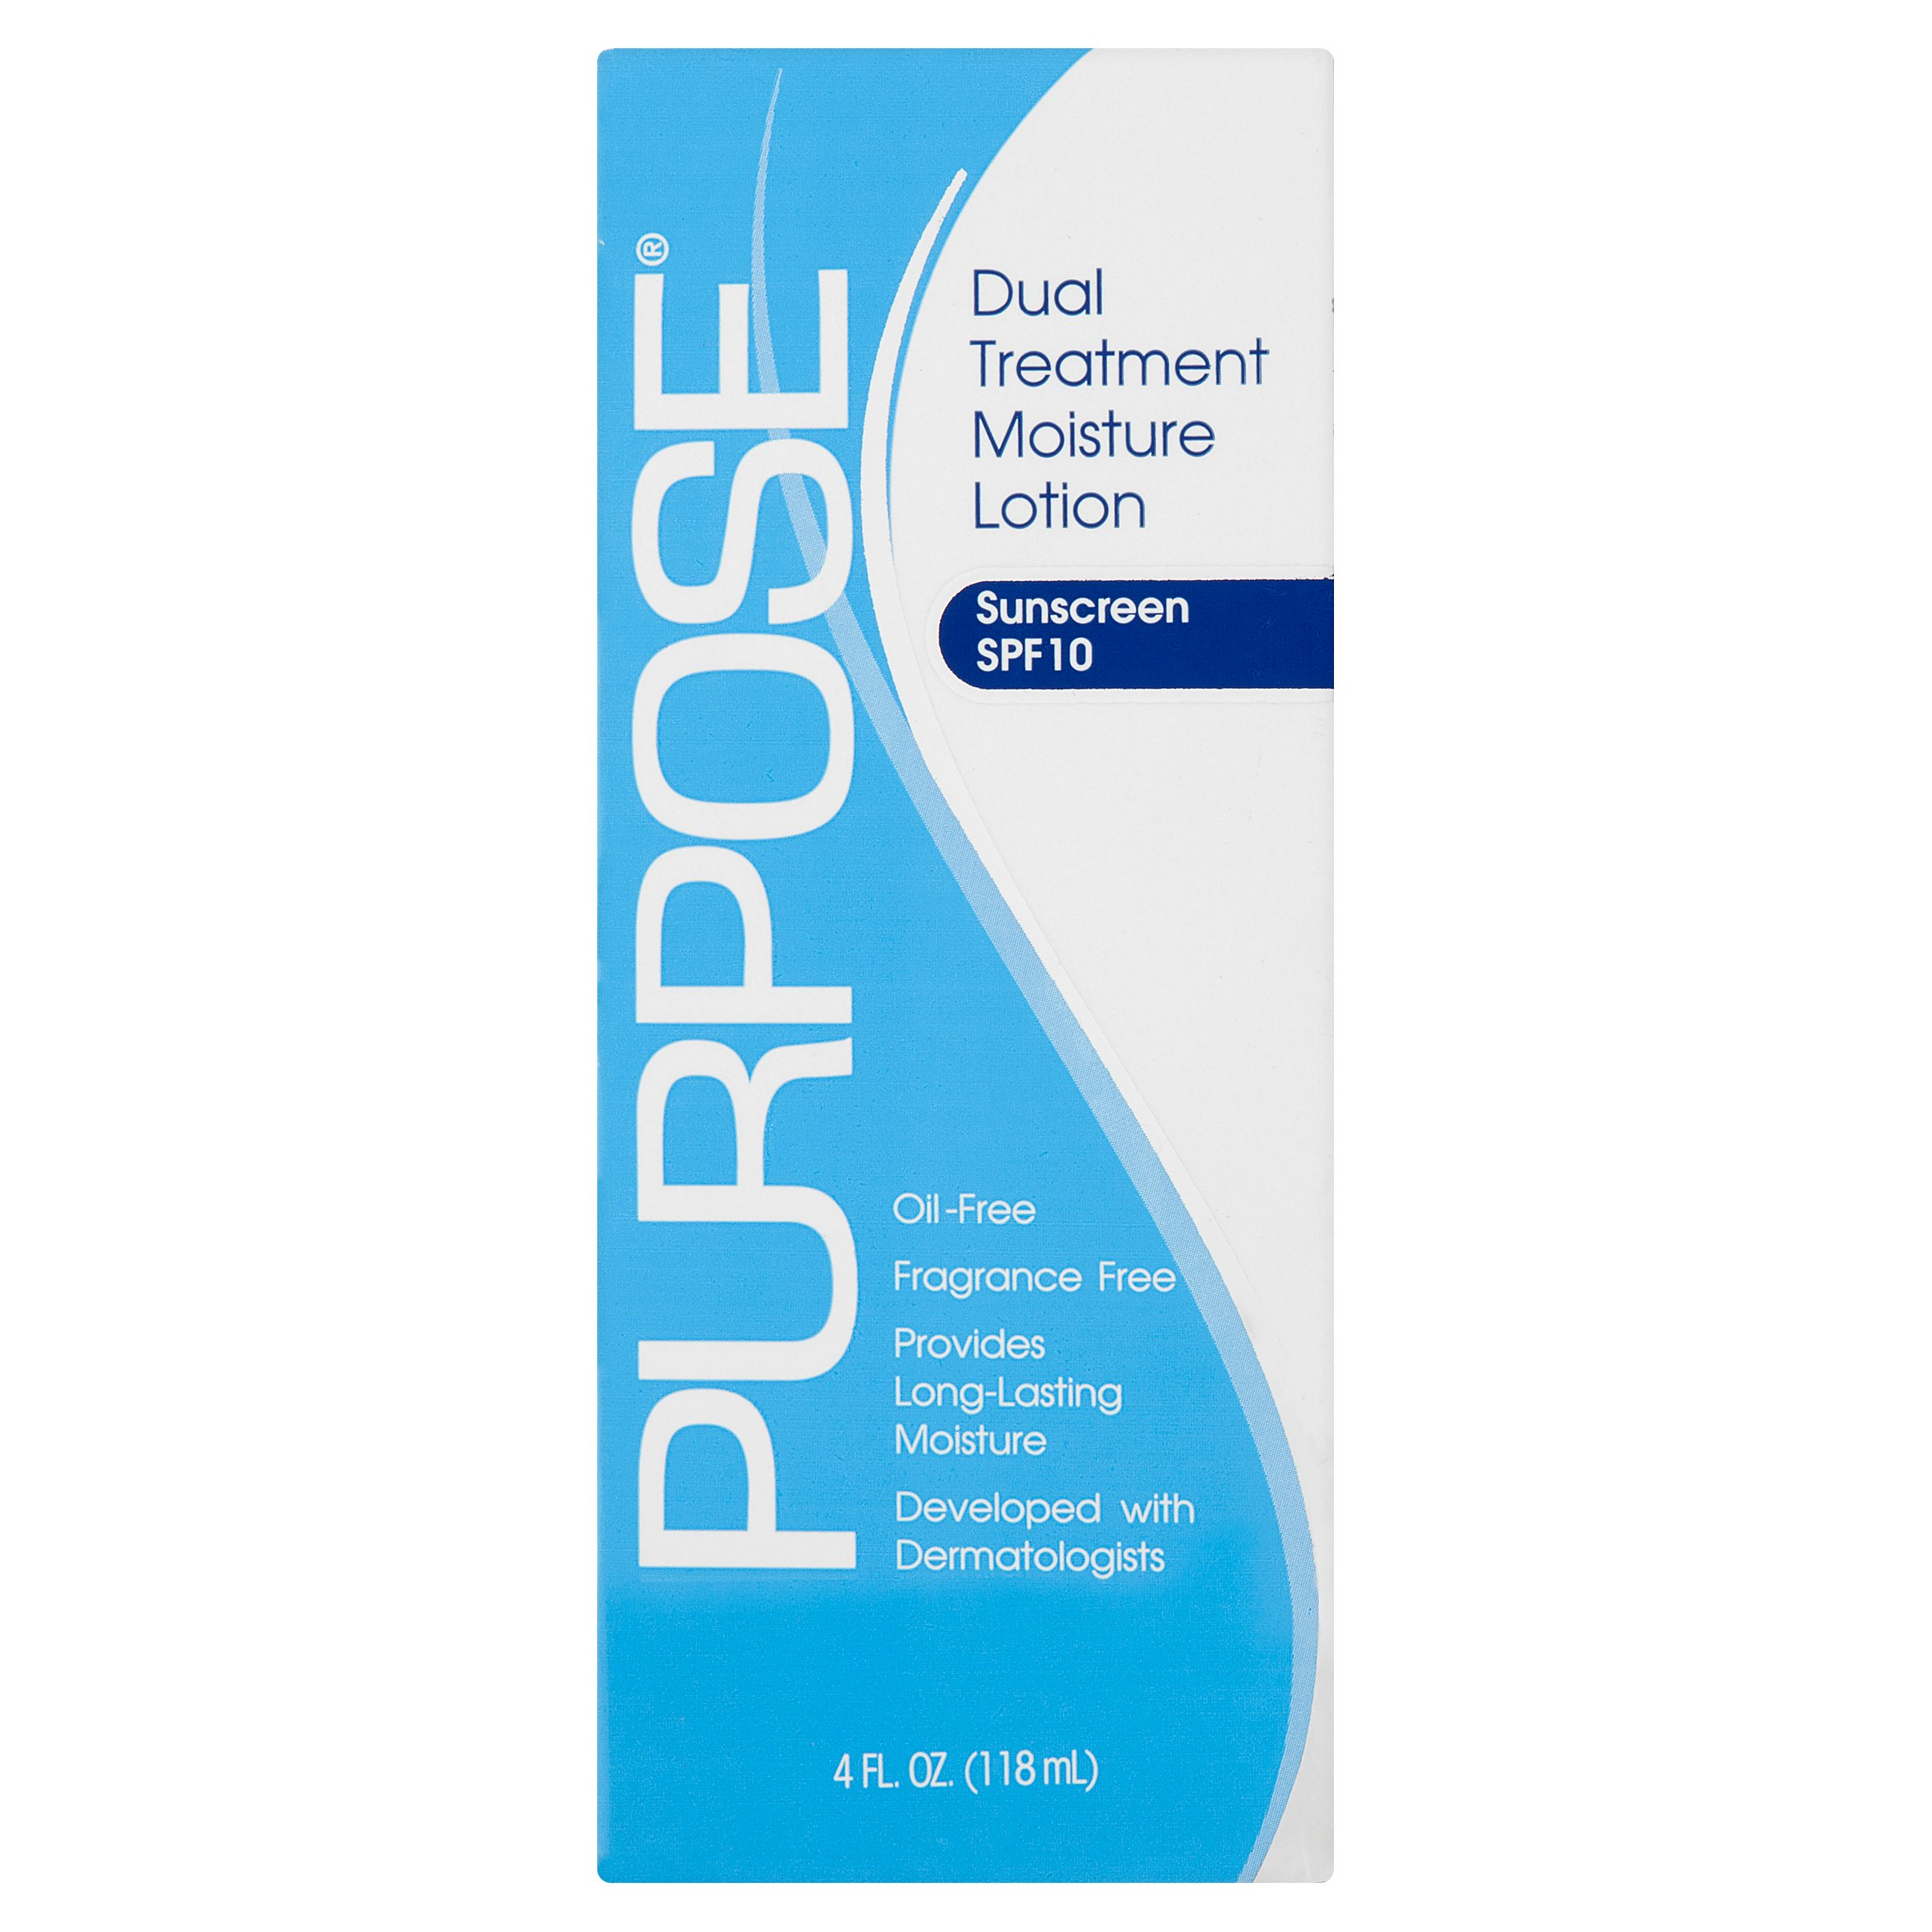 Purpose Dual Treatment Moisture Lotion Sunscreen, SPF 10, 4 fl oz